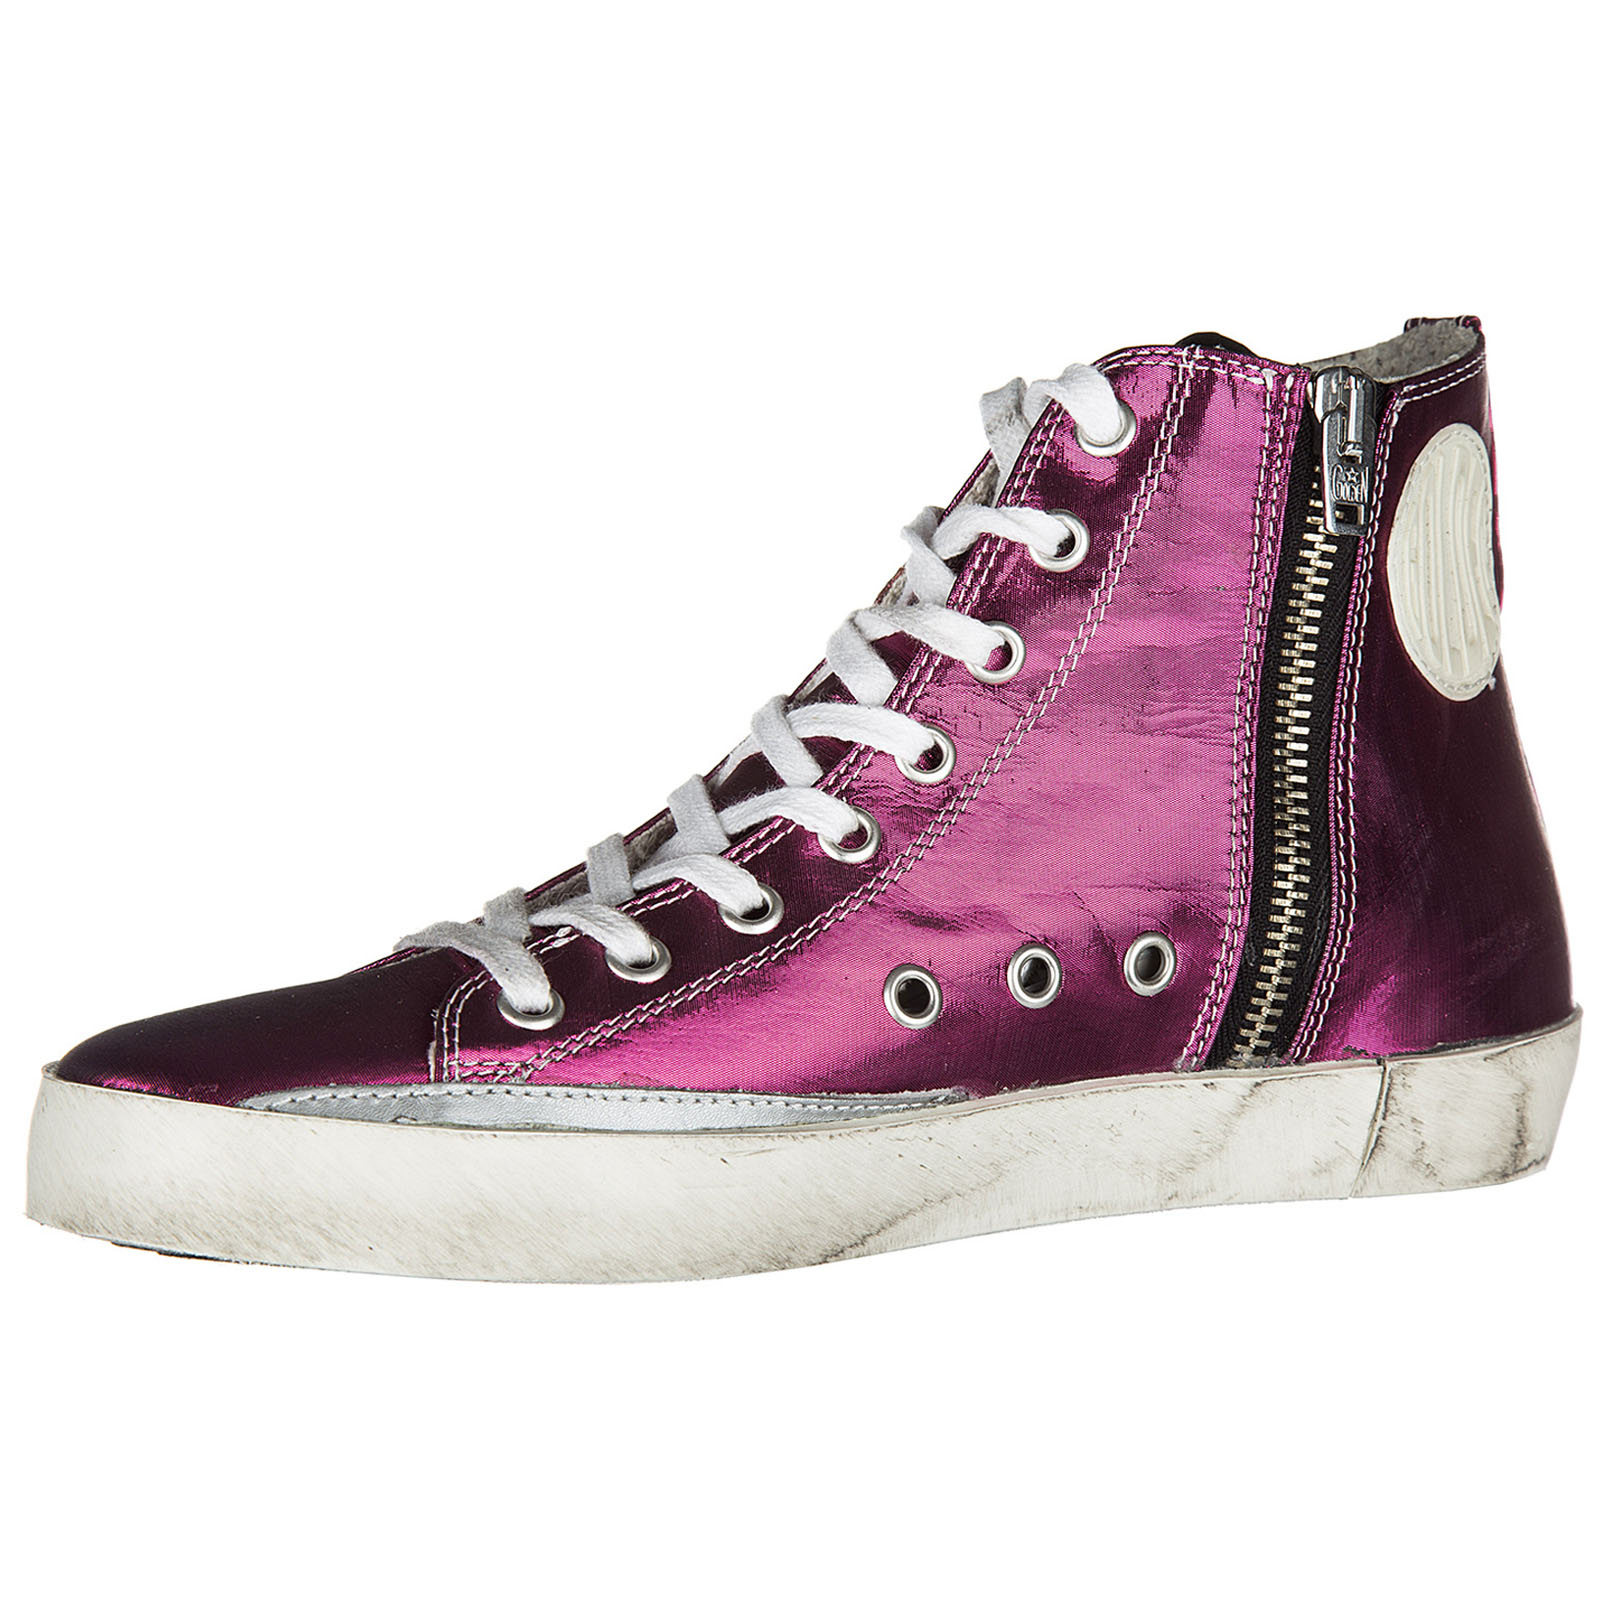 Damenschuhe damen schuhe high sneakers  francy